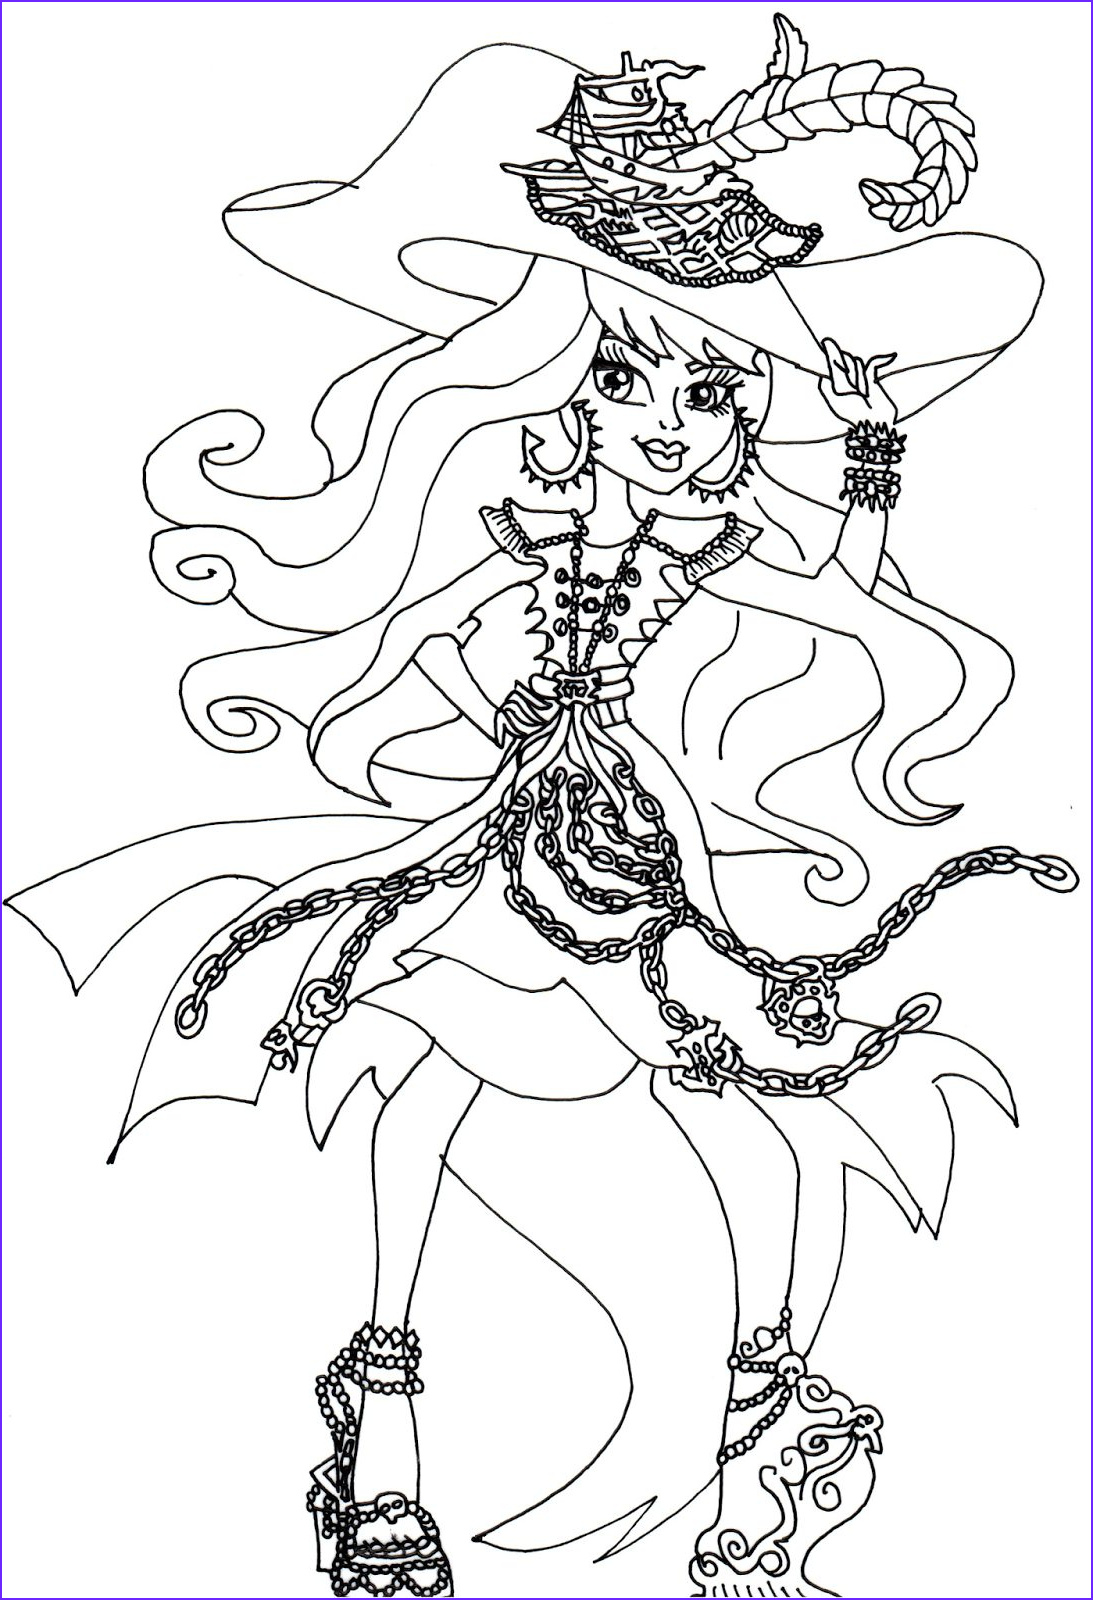 Printable Coloring Books Beautiful Image Free Printable Monster High Coloring Pages October 2015